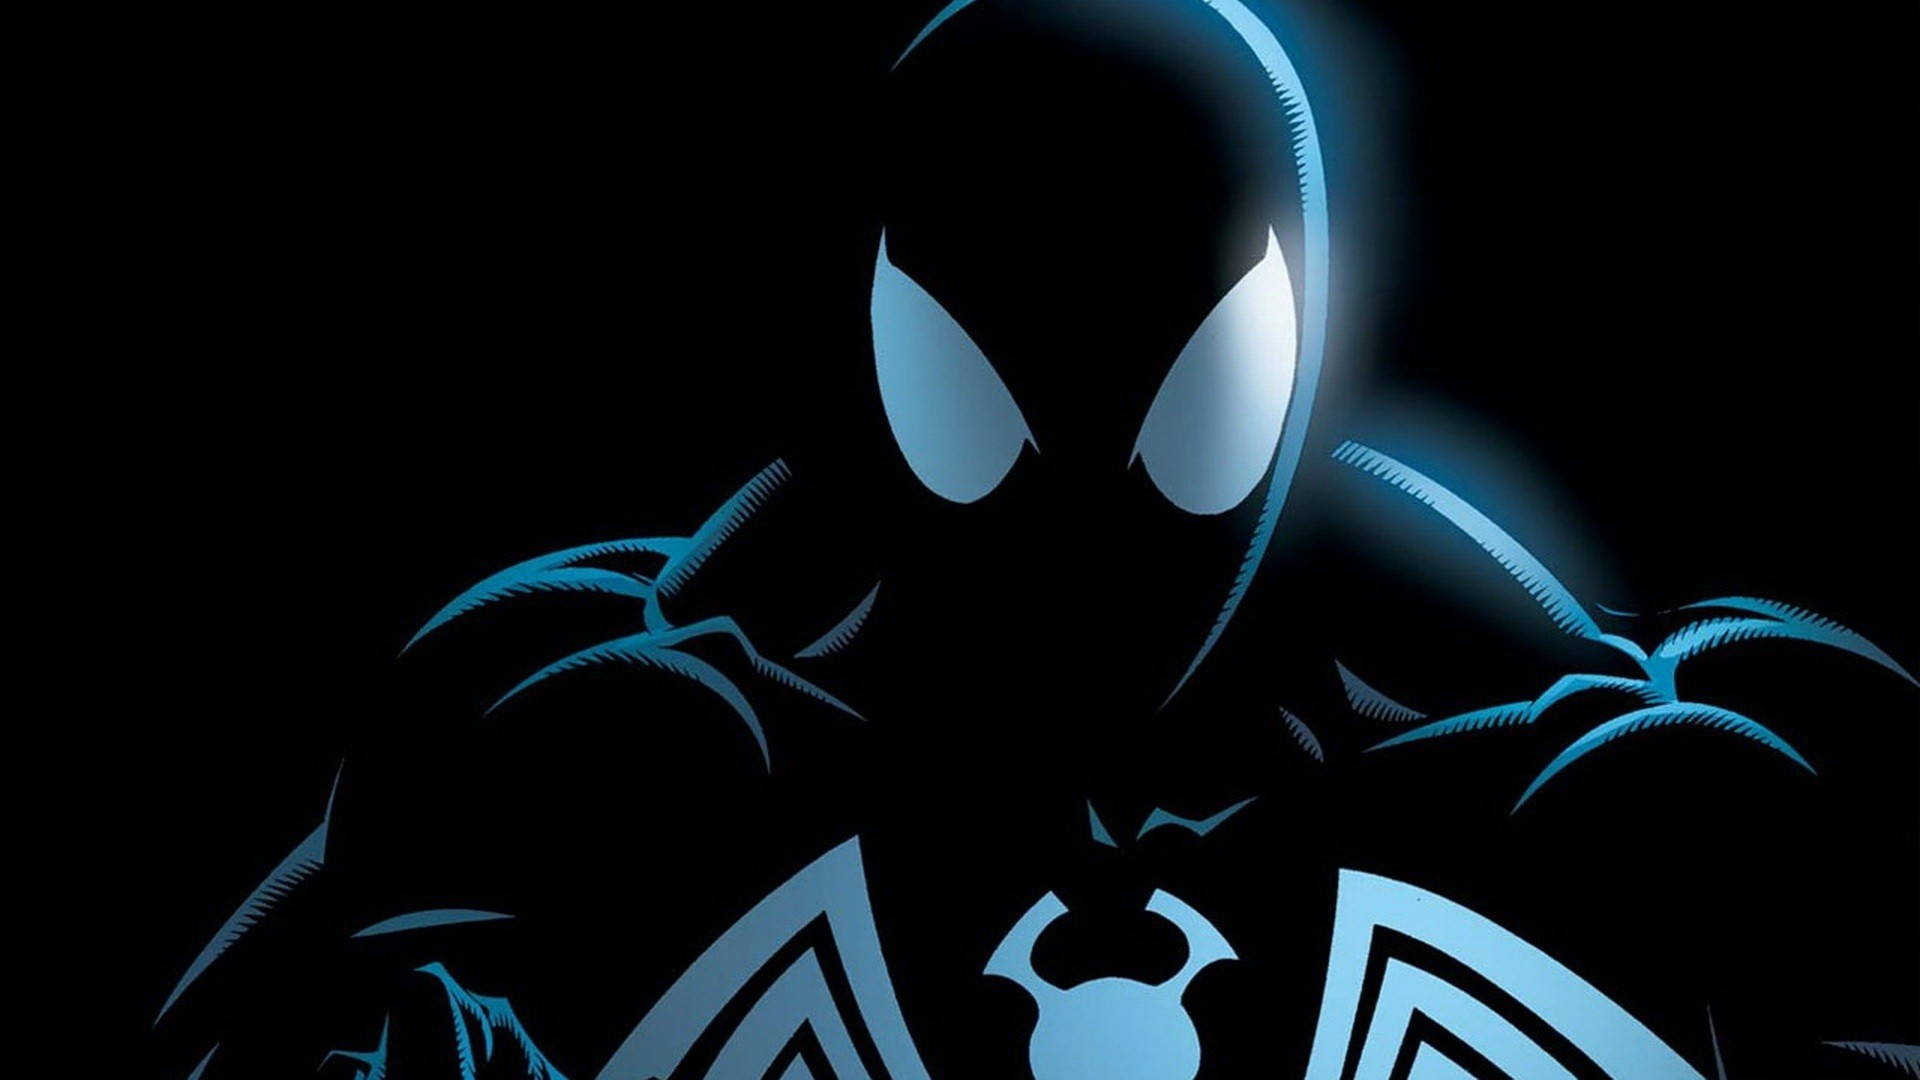 1920x1080 HD Black Spiderman Iphone Wallpaper.